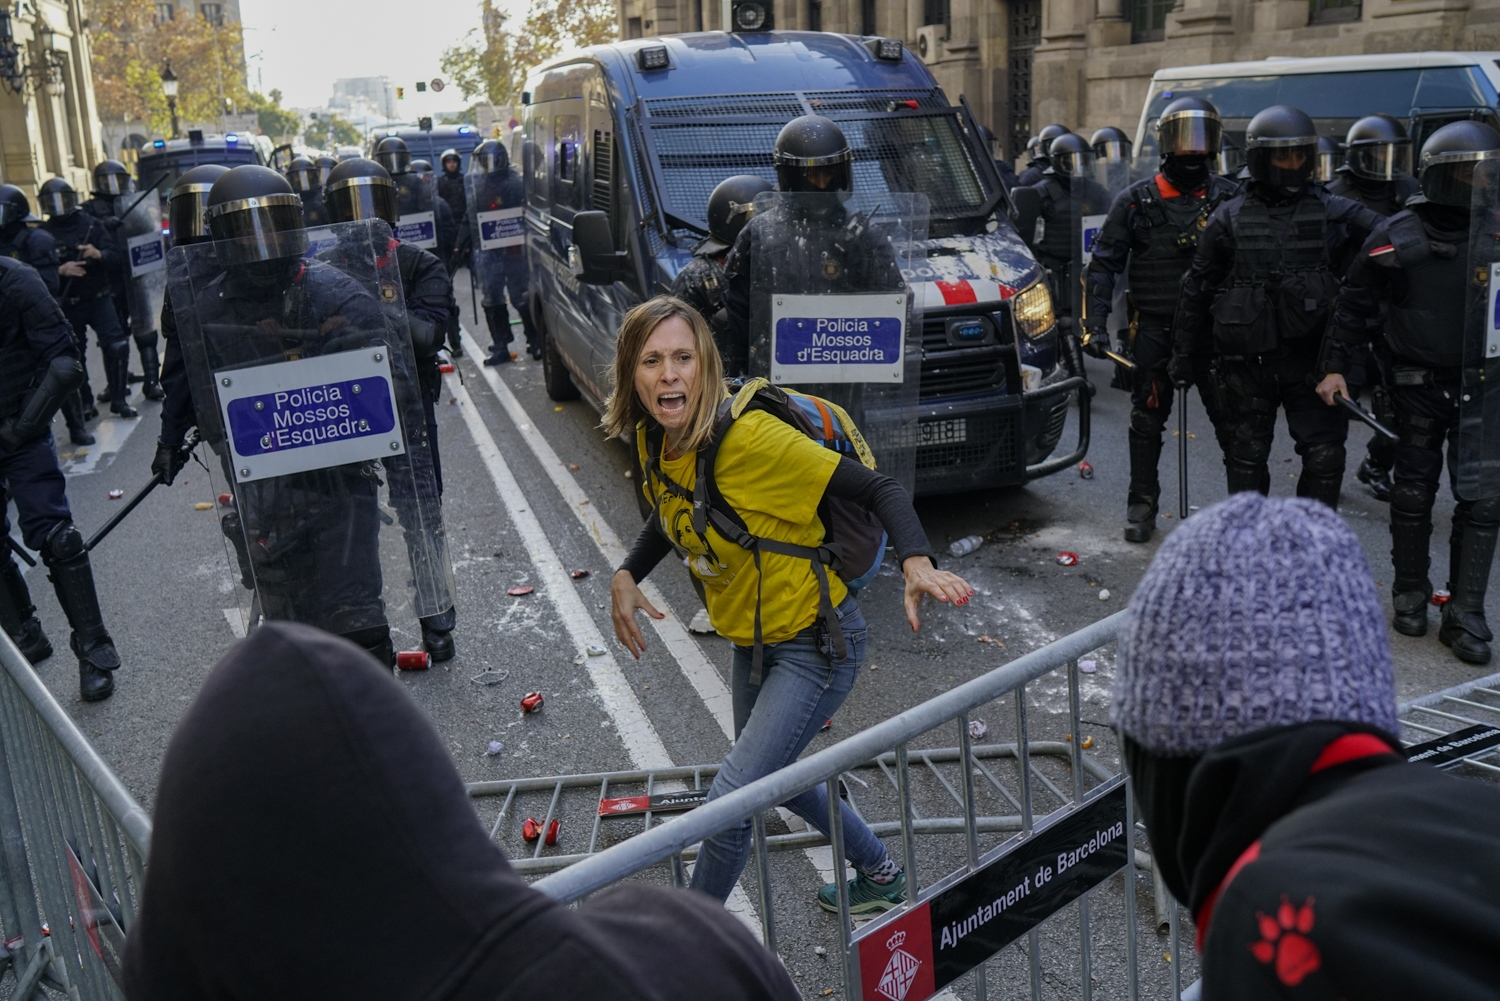 A peaceful protester tries to stop fellow protesters from breaching a police barrier and disrupting the Spanish Cabinet from holding a meeting in Barcelona, Dec. 21, 2018.